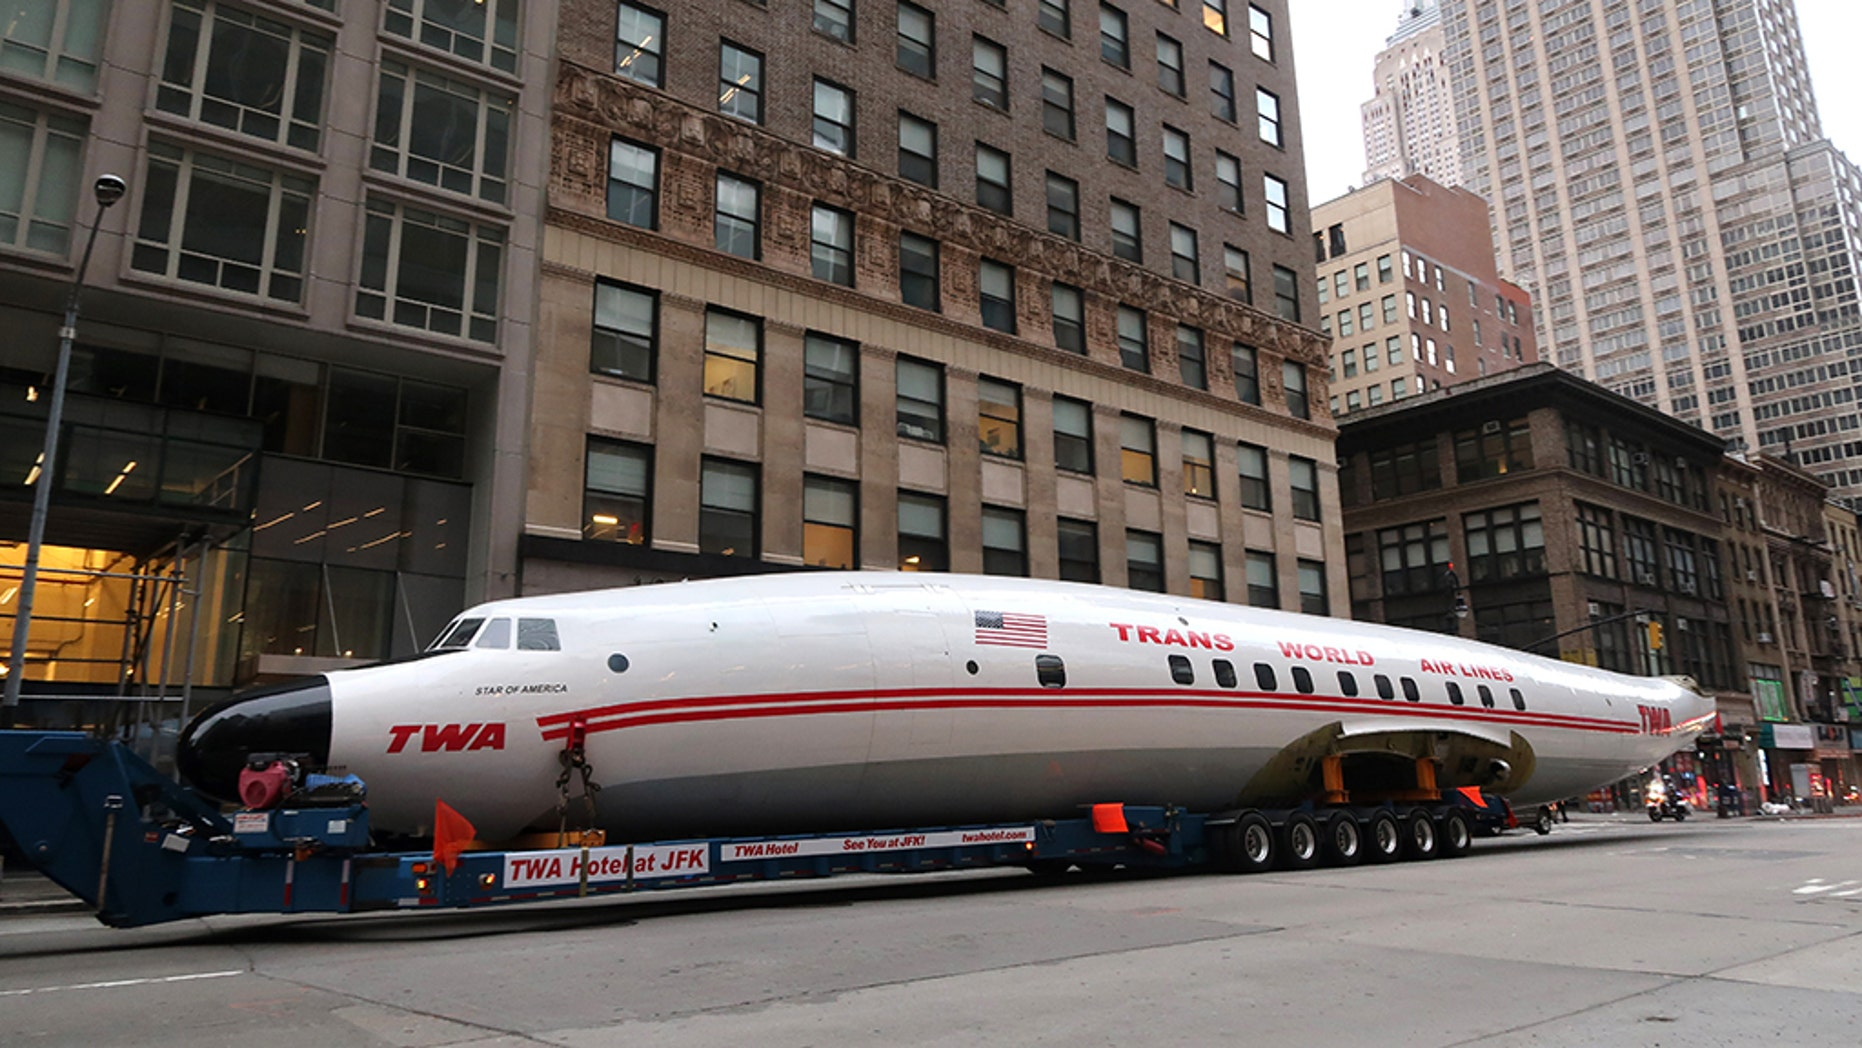 NEW YORK, NY - MARCH 23: The fuselage of a Trans World Airlines airplane is transported up 6th Avenue on March 23, 2019, in New York City. The jet was taken to Times Square and will end up at the new TWA Hotel at JFK airport.